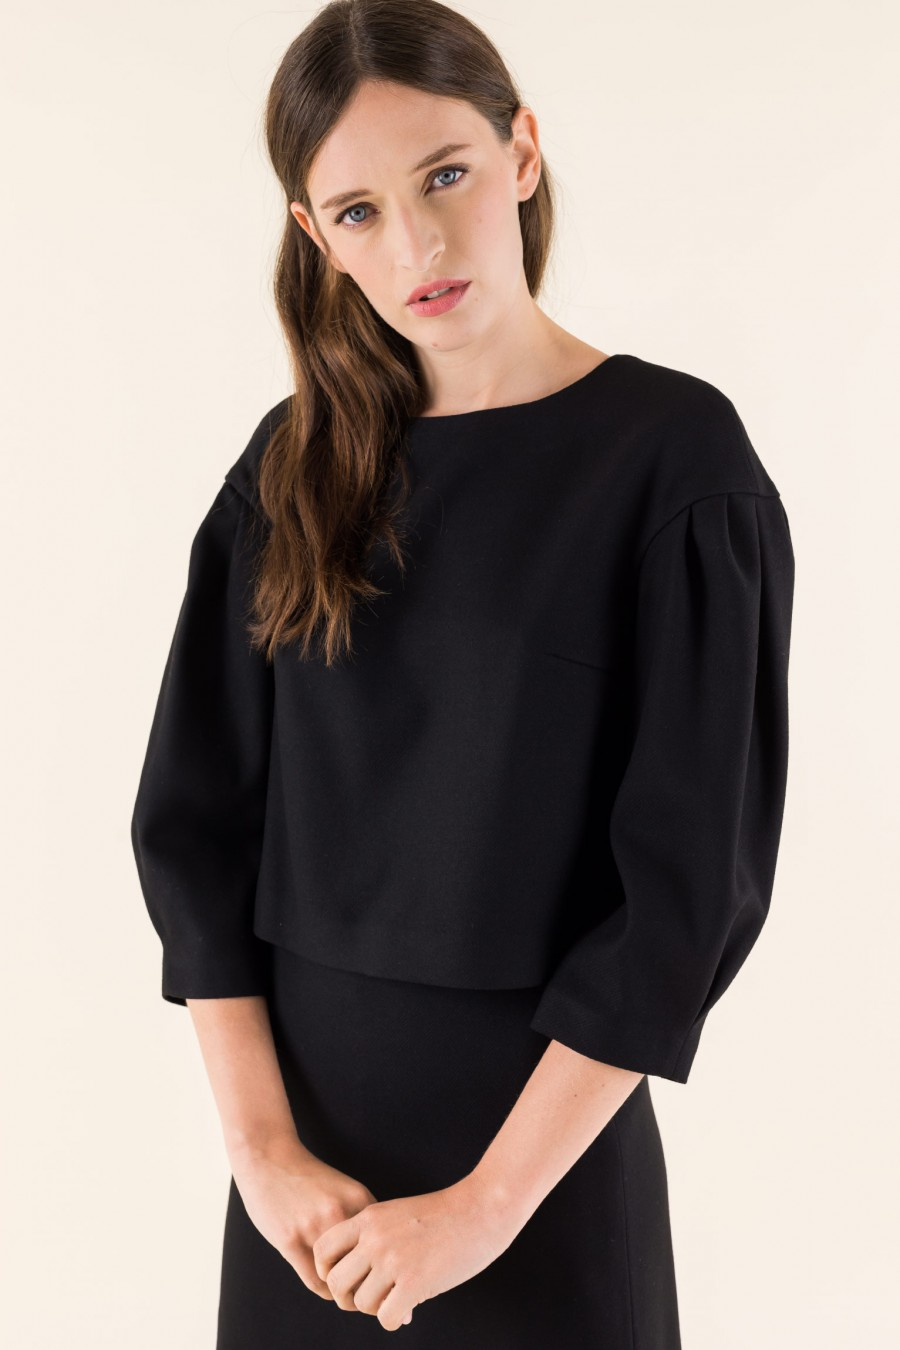 Black blouse with balloon sleeves